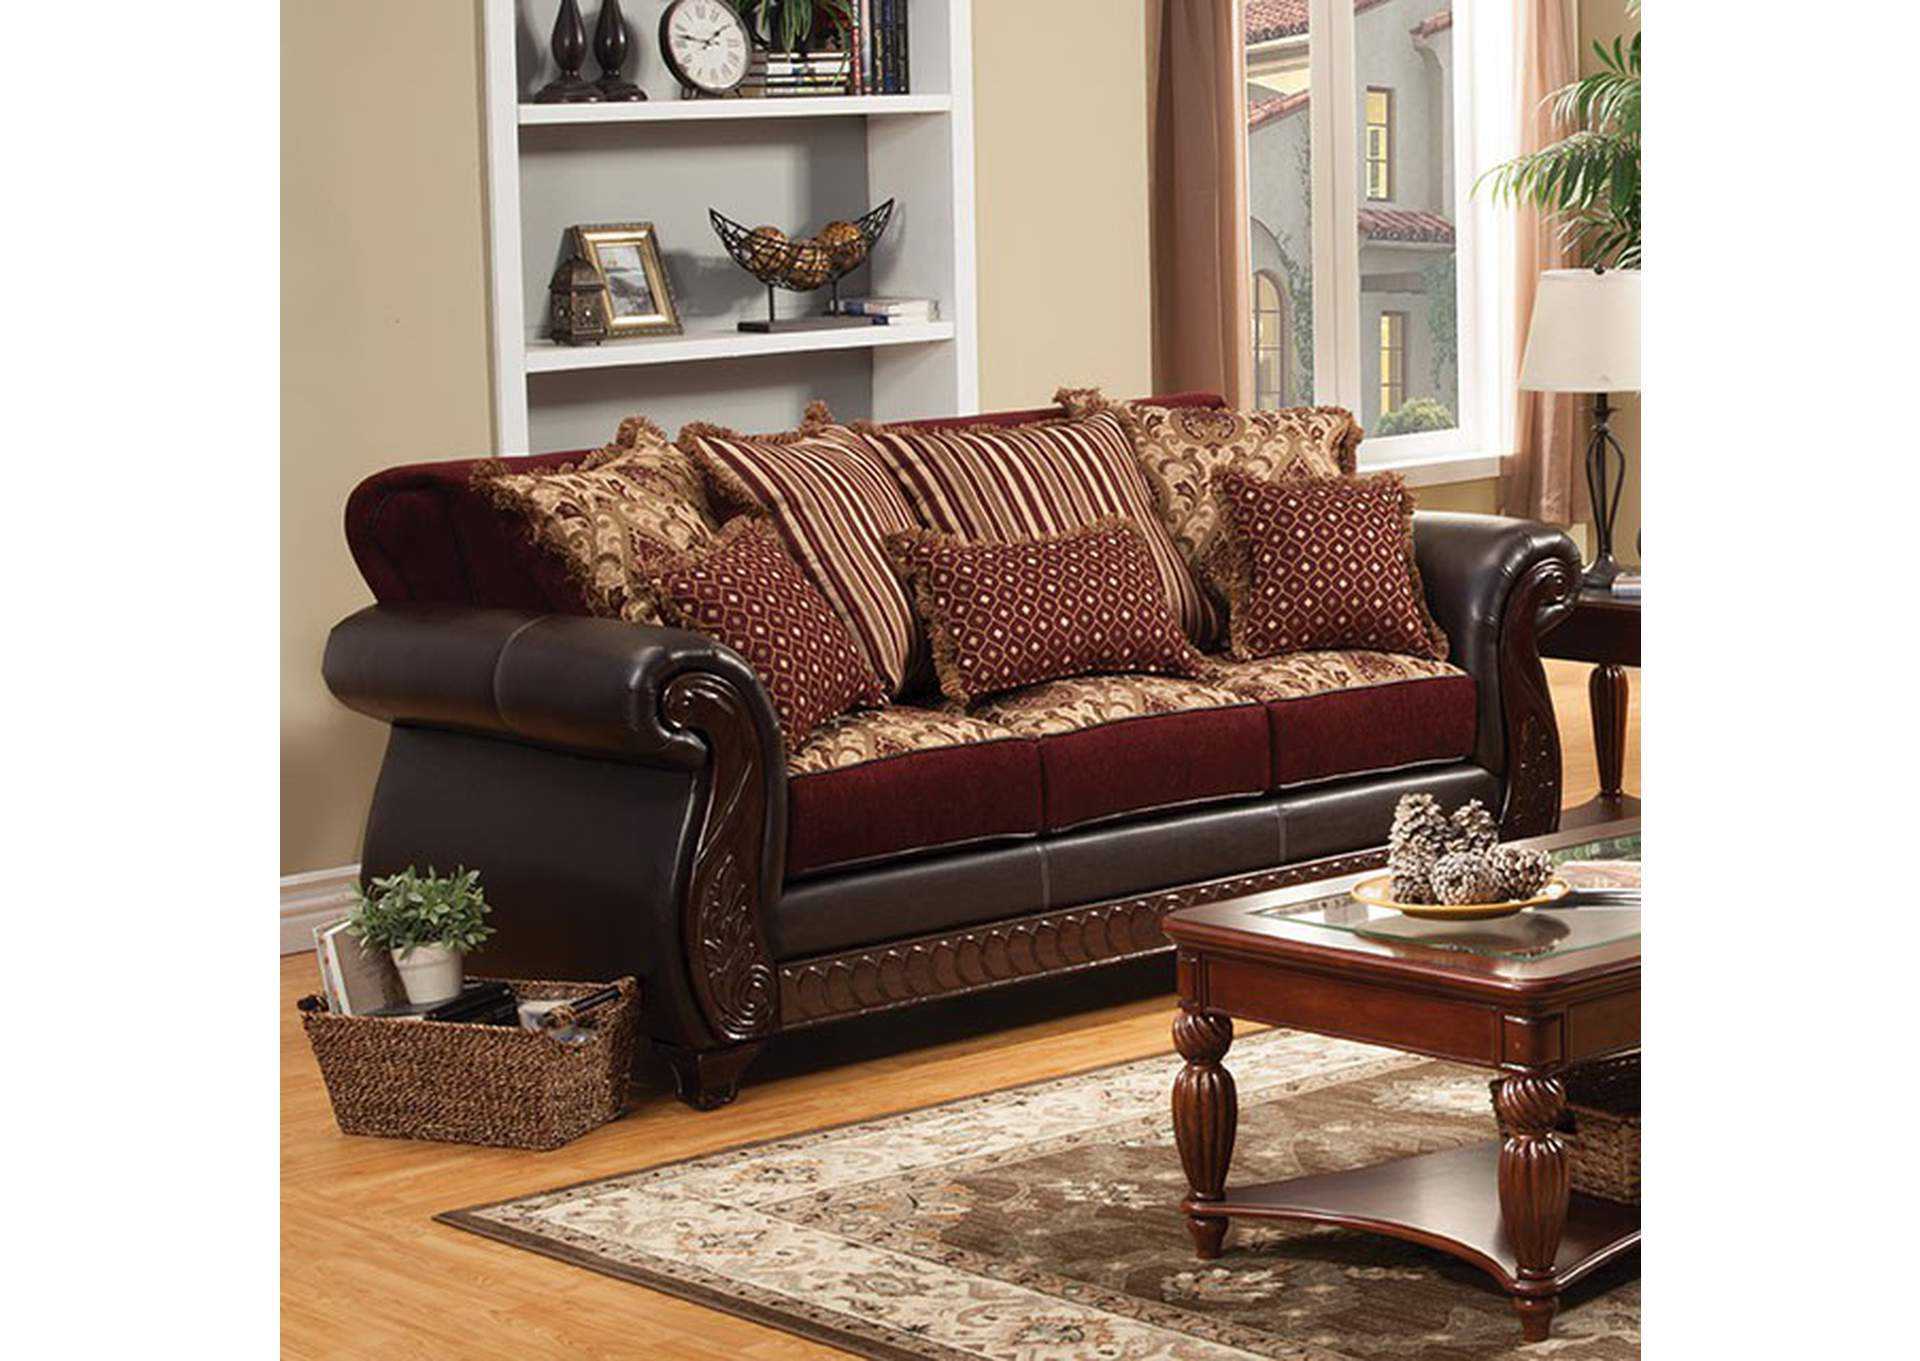 Sans Midman Furniture Franklin Dark Brown Sofa